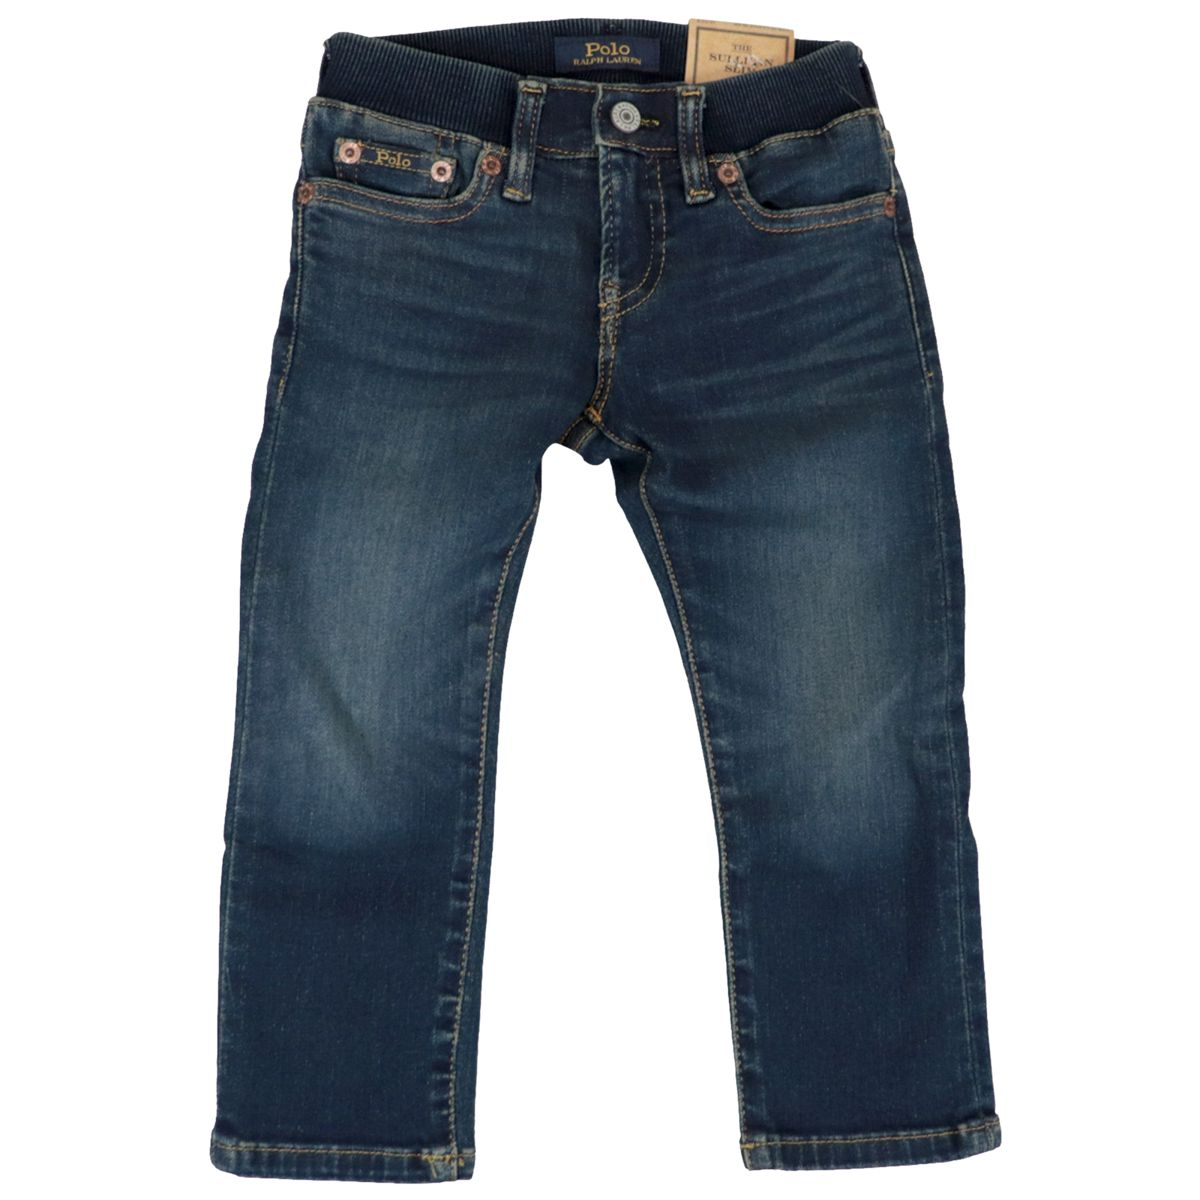 5-pocket jeans in medium denim with elastic waistband Dark denim Polo Ralph Lauren